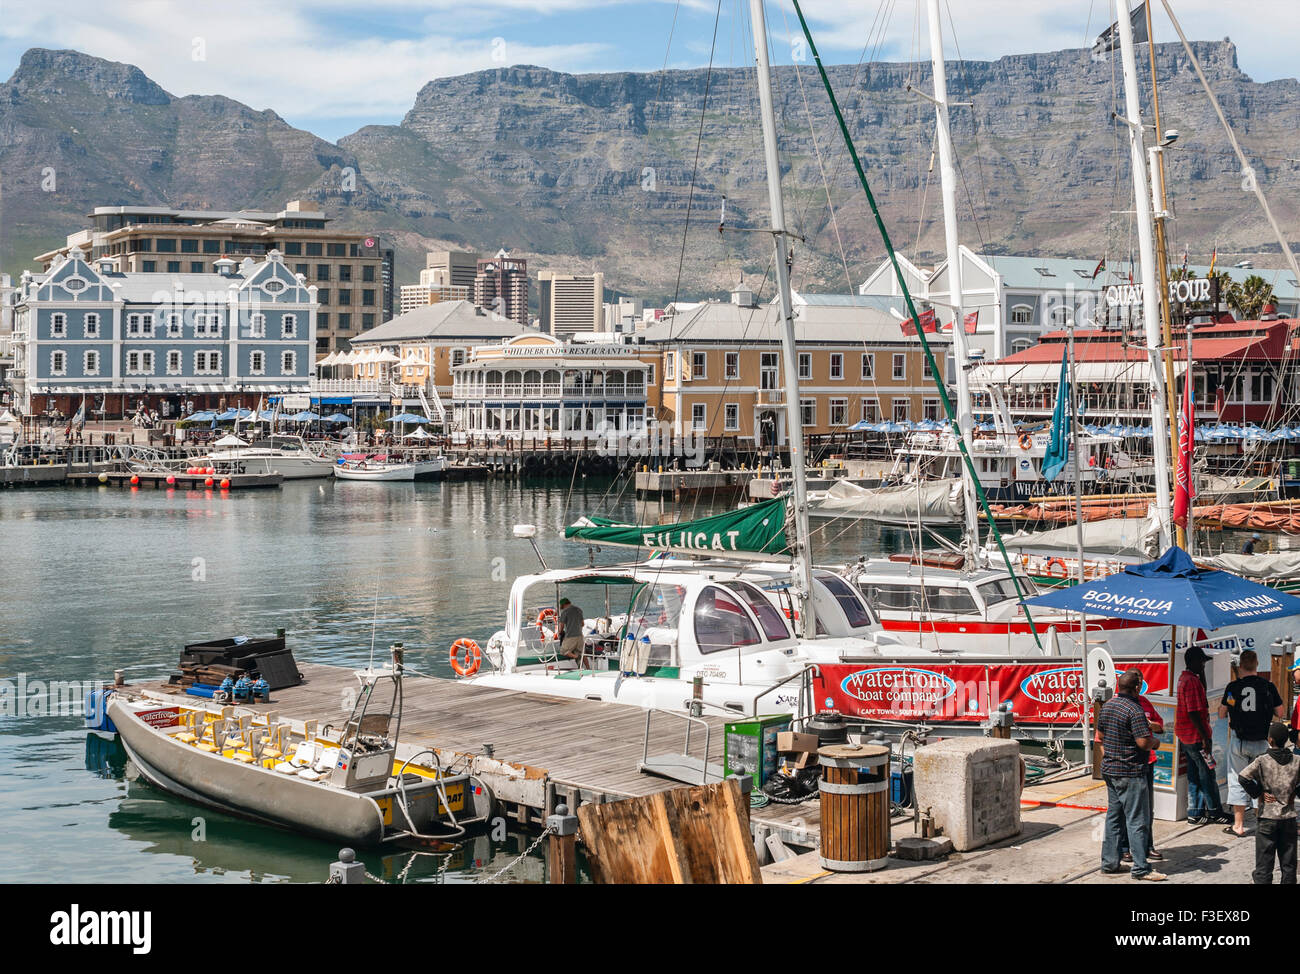 Cape Town Alfred Quay Waterfront Area, South Africa | Alfred Quay Waterfront, Kapstadt, Suedafrika - Stock Image